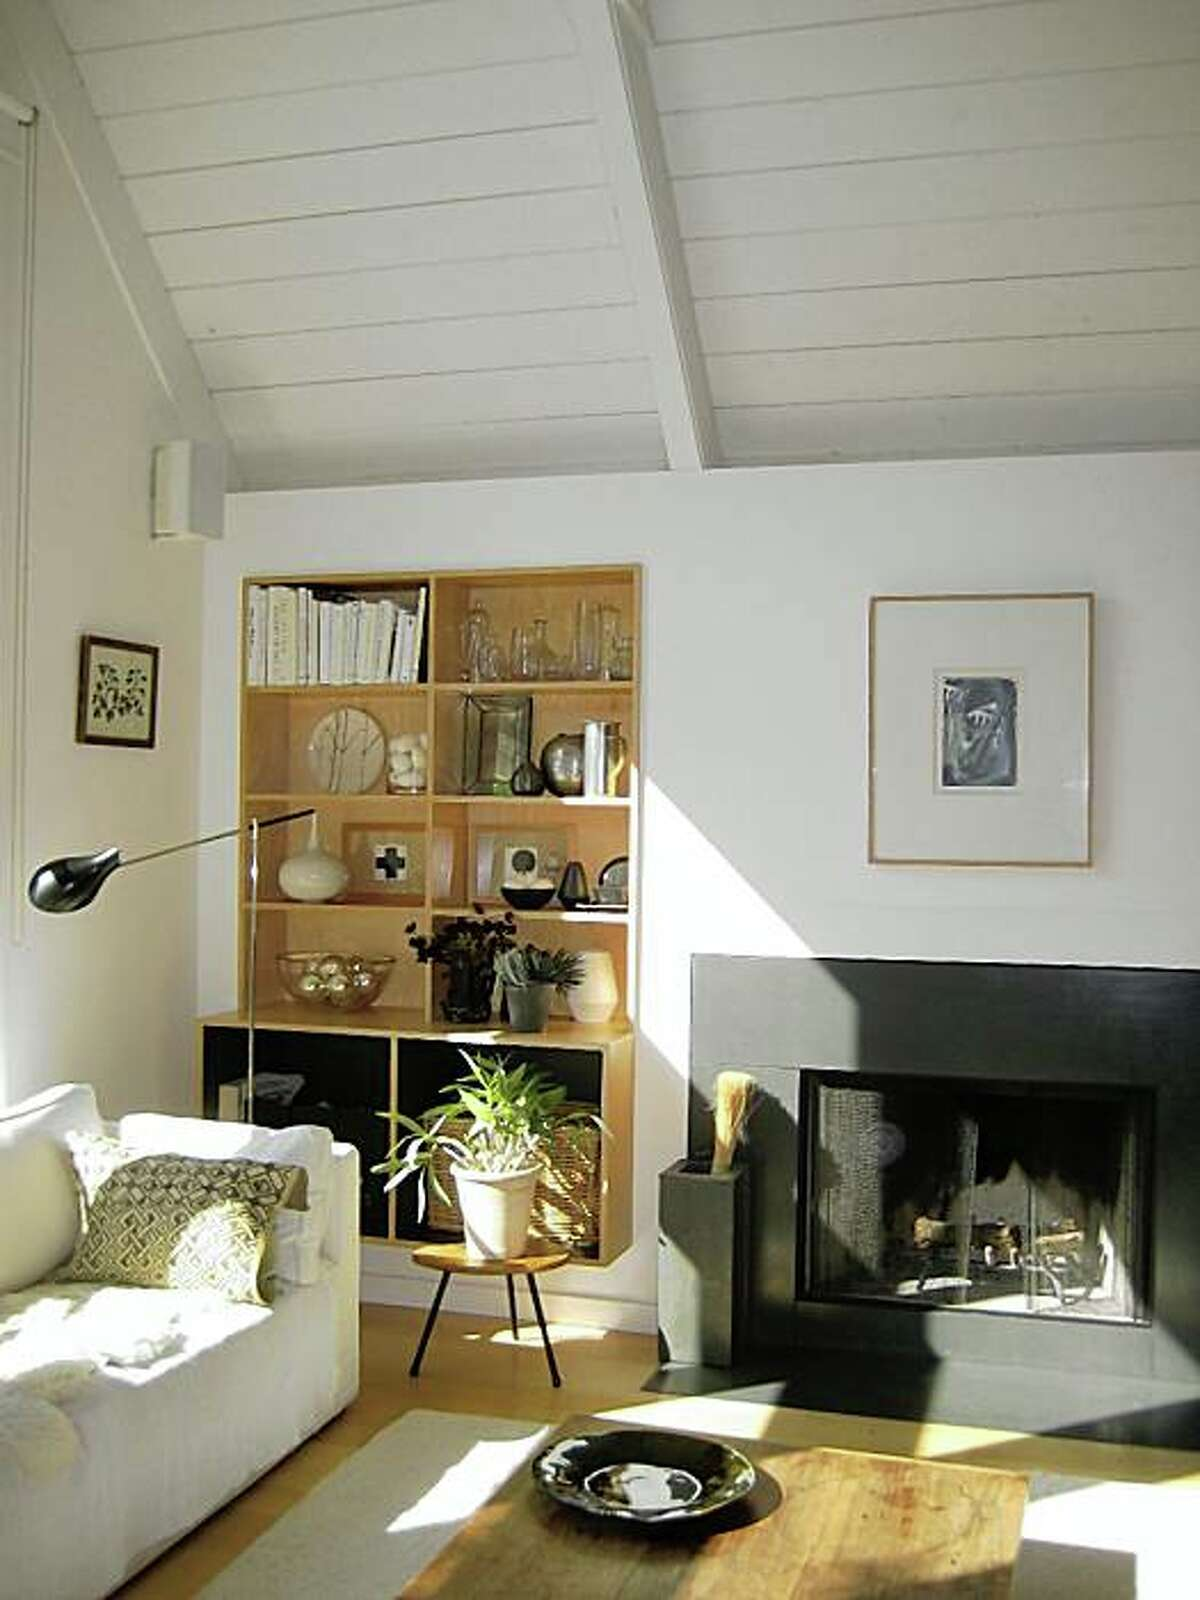 Julie Carlson's Mill Valley living room, architecture by Jerome Buttrick.